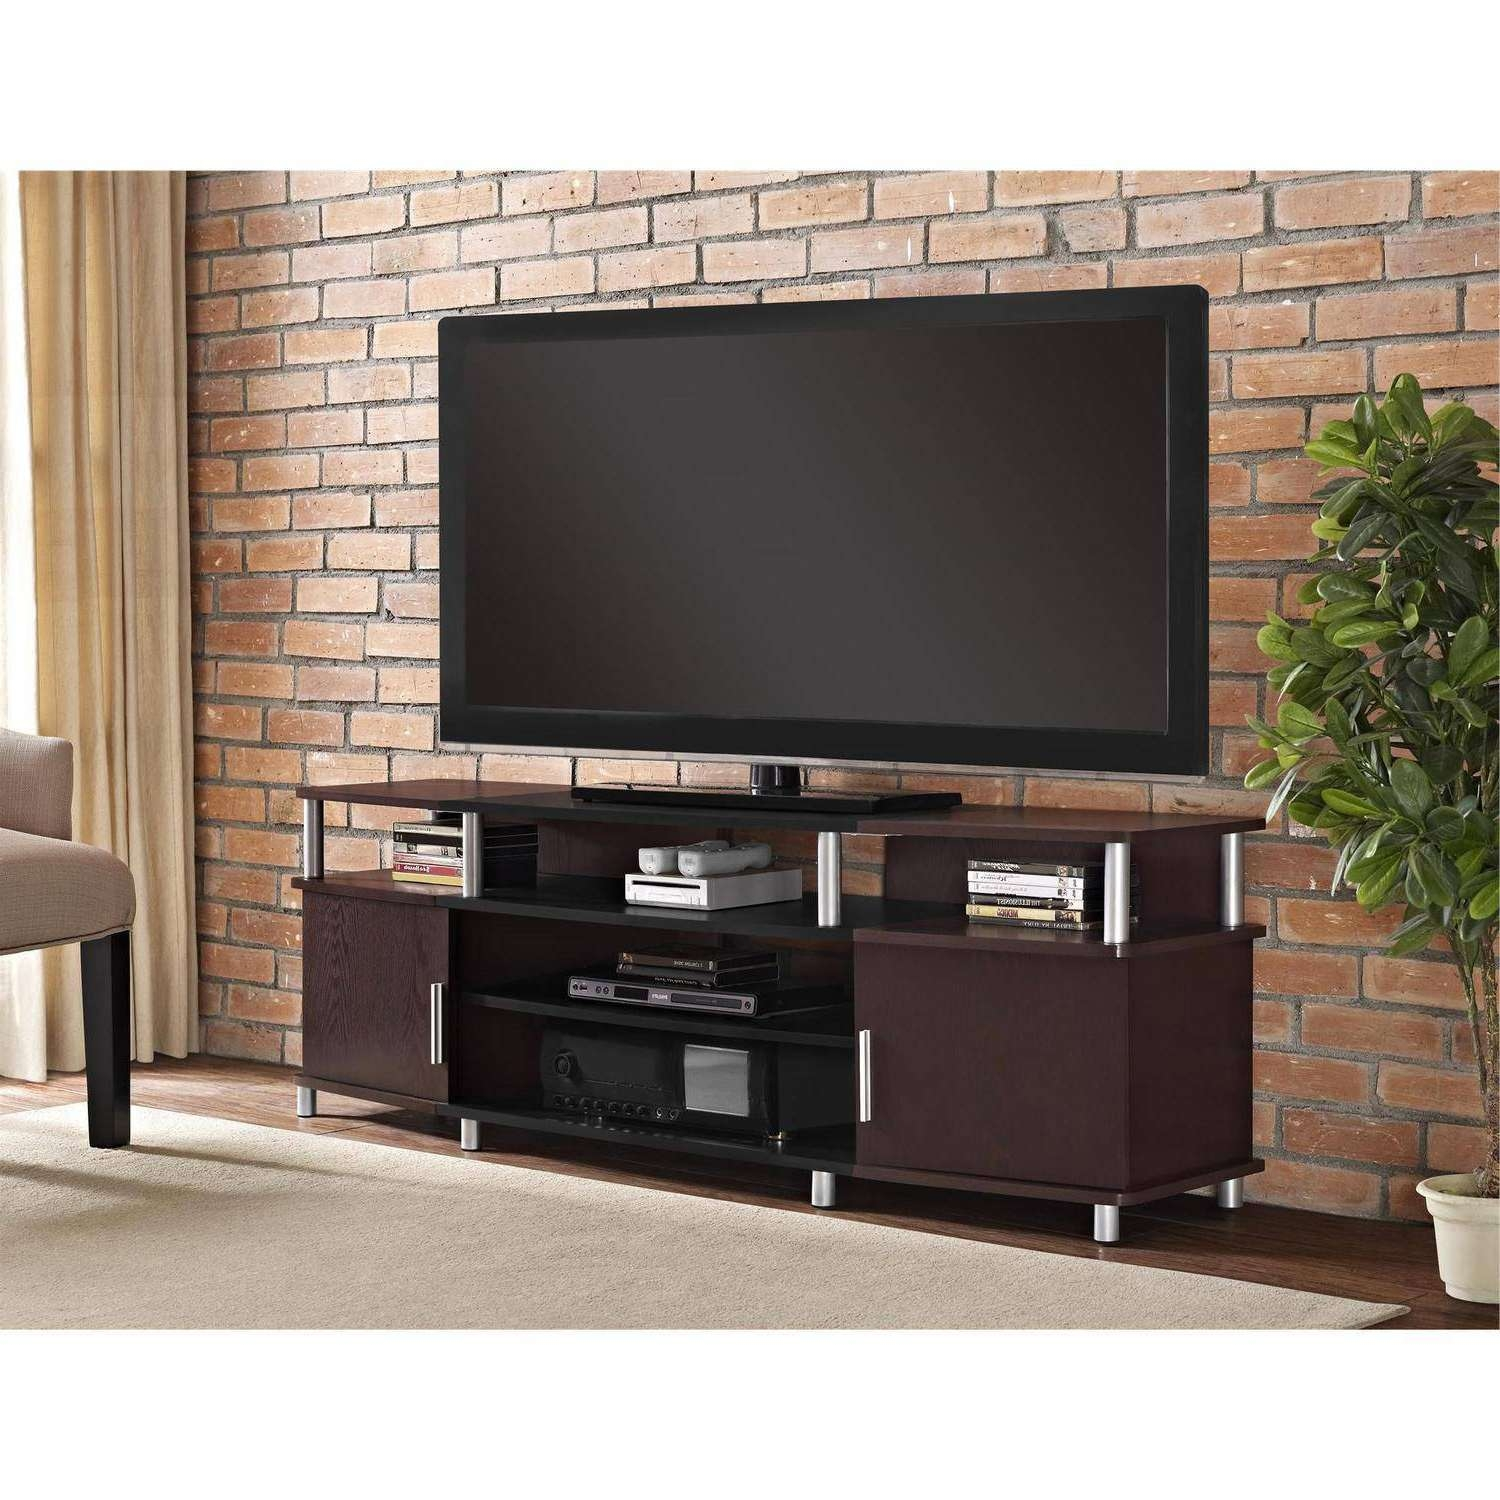 Bedroom Design : Amazing Long Tv Stand White Corner Tv Unit 60 With Corner 60 Inch Tv Stands (View 11 of 15)